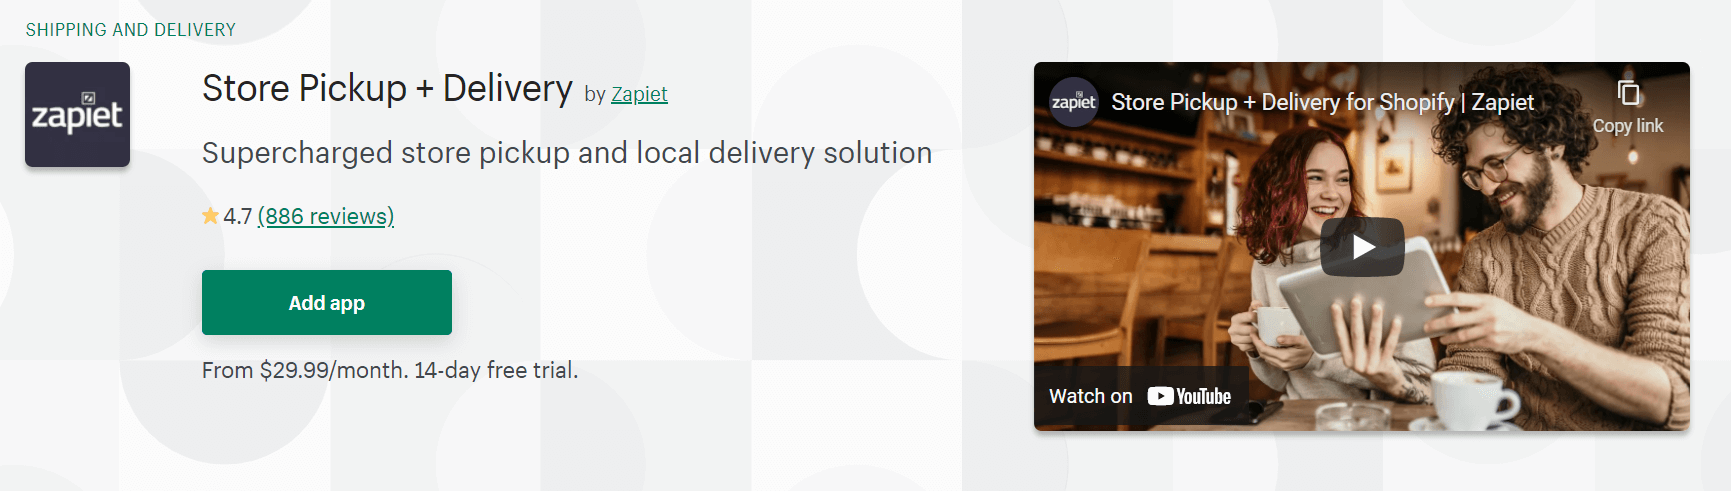 A screenshot of Zapiet`s Store Pickup + Delivery app Shopify page.